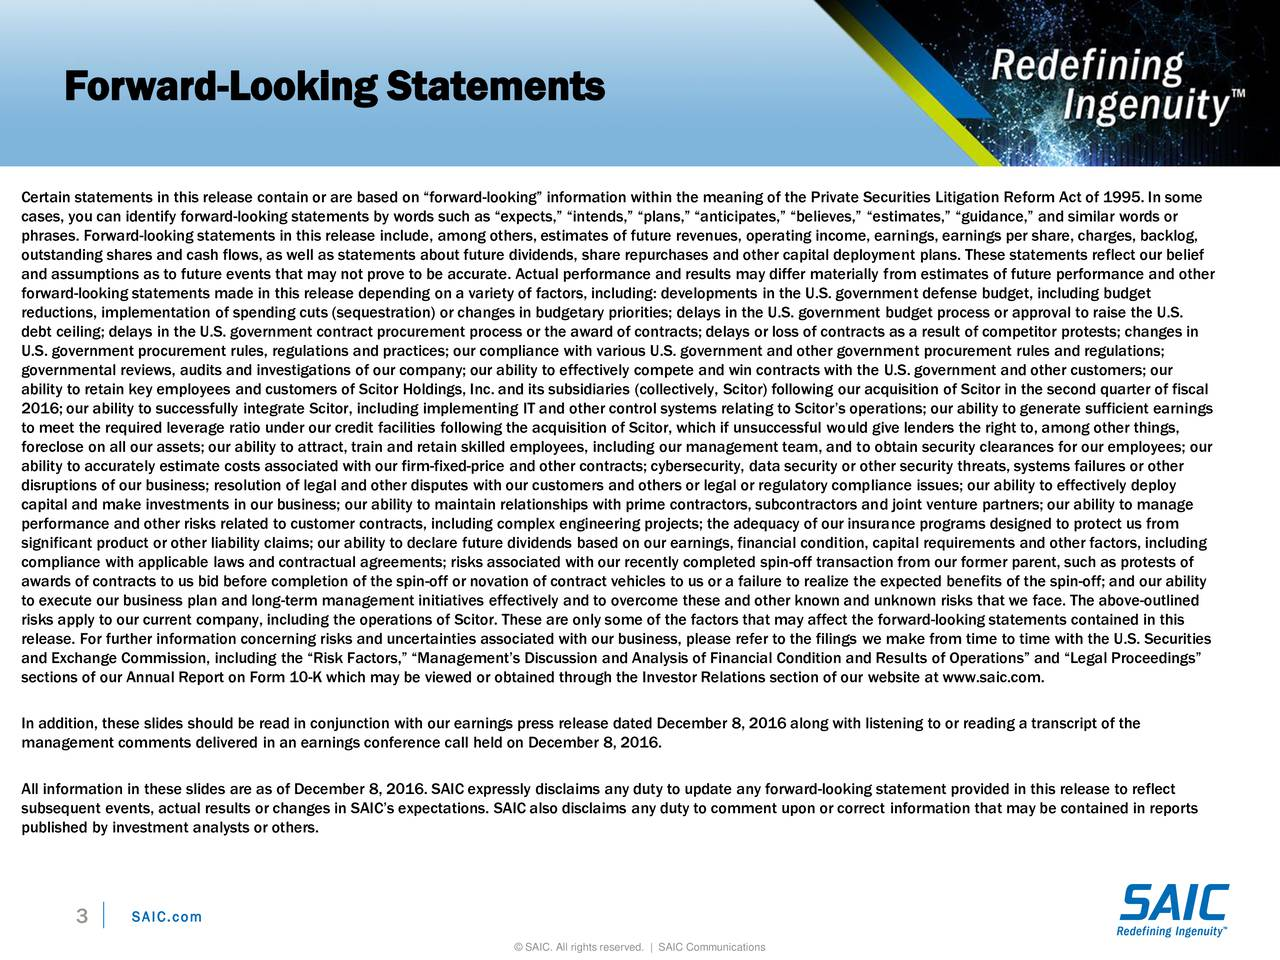 Certain statements in this release contain or are based on forward-looking information within the meaning of the Private Securities Litigation Reform Act of 1995. In some cases, you can identify forward-looking statements by words such as expects, intends, plans, anticipates, believes, estimates, guidance, and similar words or phrases. Forward-looking statements in this release include, among others, estimates of future revenues, operating income, earnings, earnings per share, charges, backlog, outstanding shares and cash flows, as well as statements about future dividends, share repurchases and other capital deployment plans. These statements reflect our belief and assumptions as to future events that may not prove to be accurate. Actual performance and results may differ materially from estimates of future performance and other forward-looking statements made in this release depending on a variety of factors, including: developments in the U.S. government defense budget, including budget reductions, implementation of spending cuts (sequestration) or changes in budgetary priorities; delays in the U.S. government budget process or approval to raise the U.S. debt ceiling; delays in the U.S. government contract procurement process or the award of contracts; delays or loss of contracts as a result of competitor protests; changes in U.S. government procurement rules, regulations and practices; our compliance with various U.S. government and other government procurement rules and regulations; governmental reviews, audits and investigations of our company; our ability to effectively compete and win contracts with the U.S. government and other customers; our ability to retain key employees and customers of Scitor Holdings, Inc. and its subsidiaries (collectively, Scitor) following our acquisition of Scitor in the second quarter of fiscal 2016; our ability to successfully integrate Scitor, including implementing IT and other control systems relating to Scitors operations; o